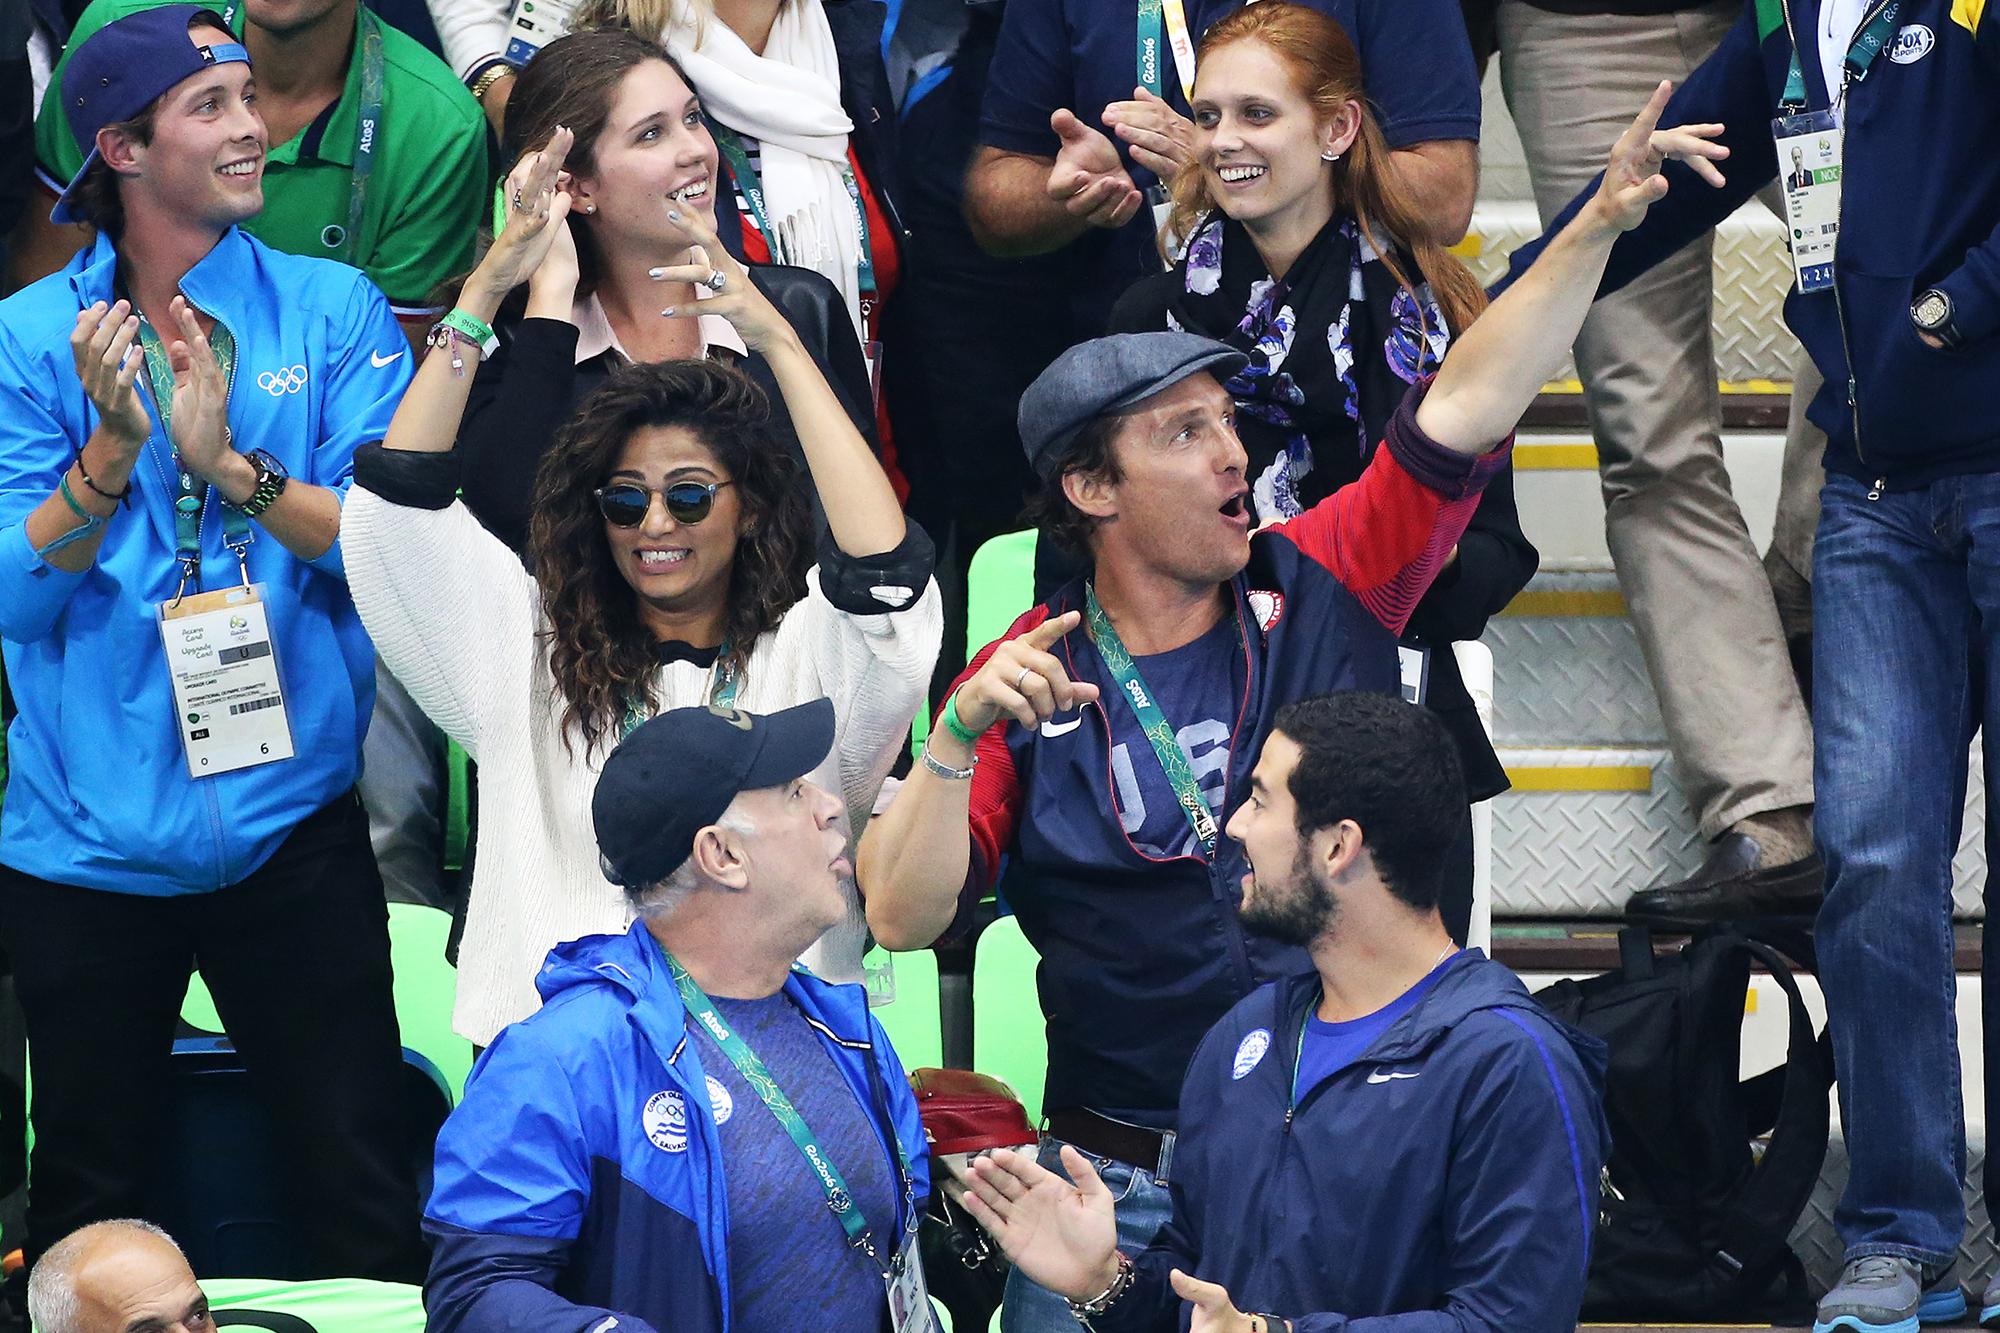 Matthew McConaughey and his wife, Camila Alves, attend the swimming finals on day 5 of the Rio 2016 Olympic Games, on Aug. 10, 2016 in Rio de Janeiro, Brazil.